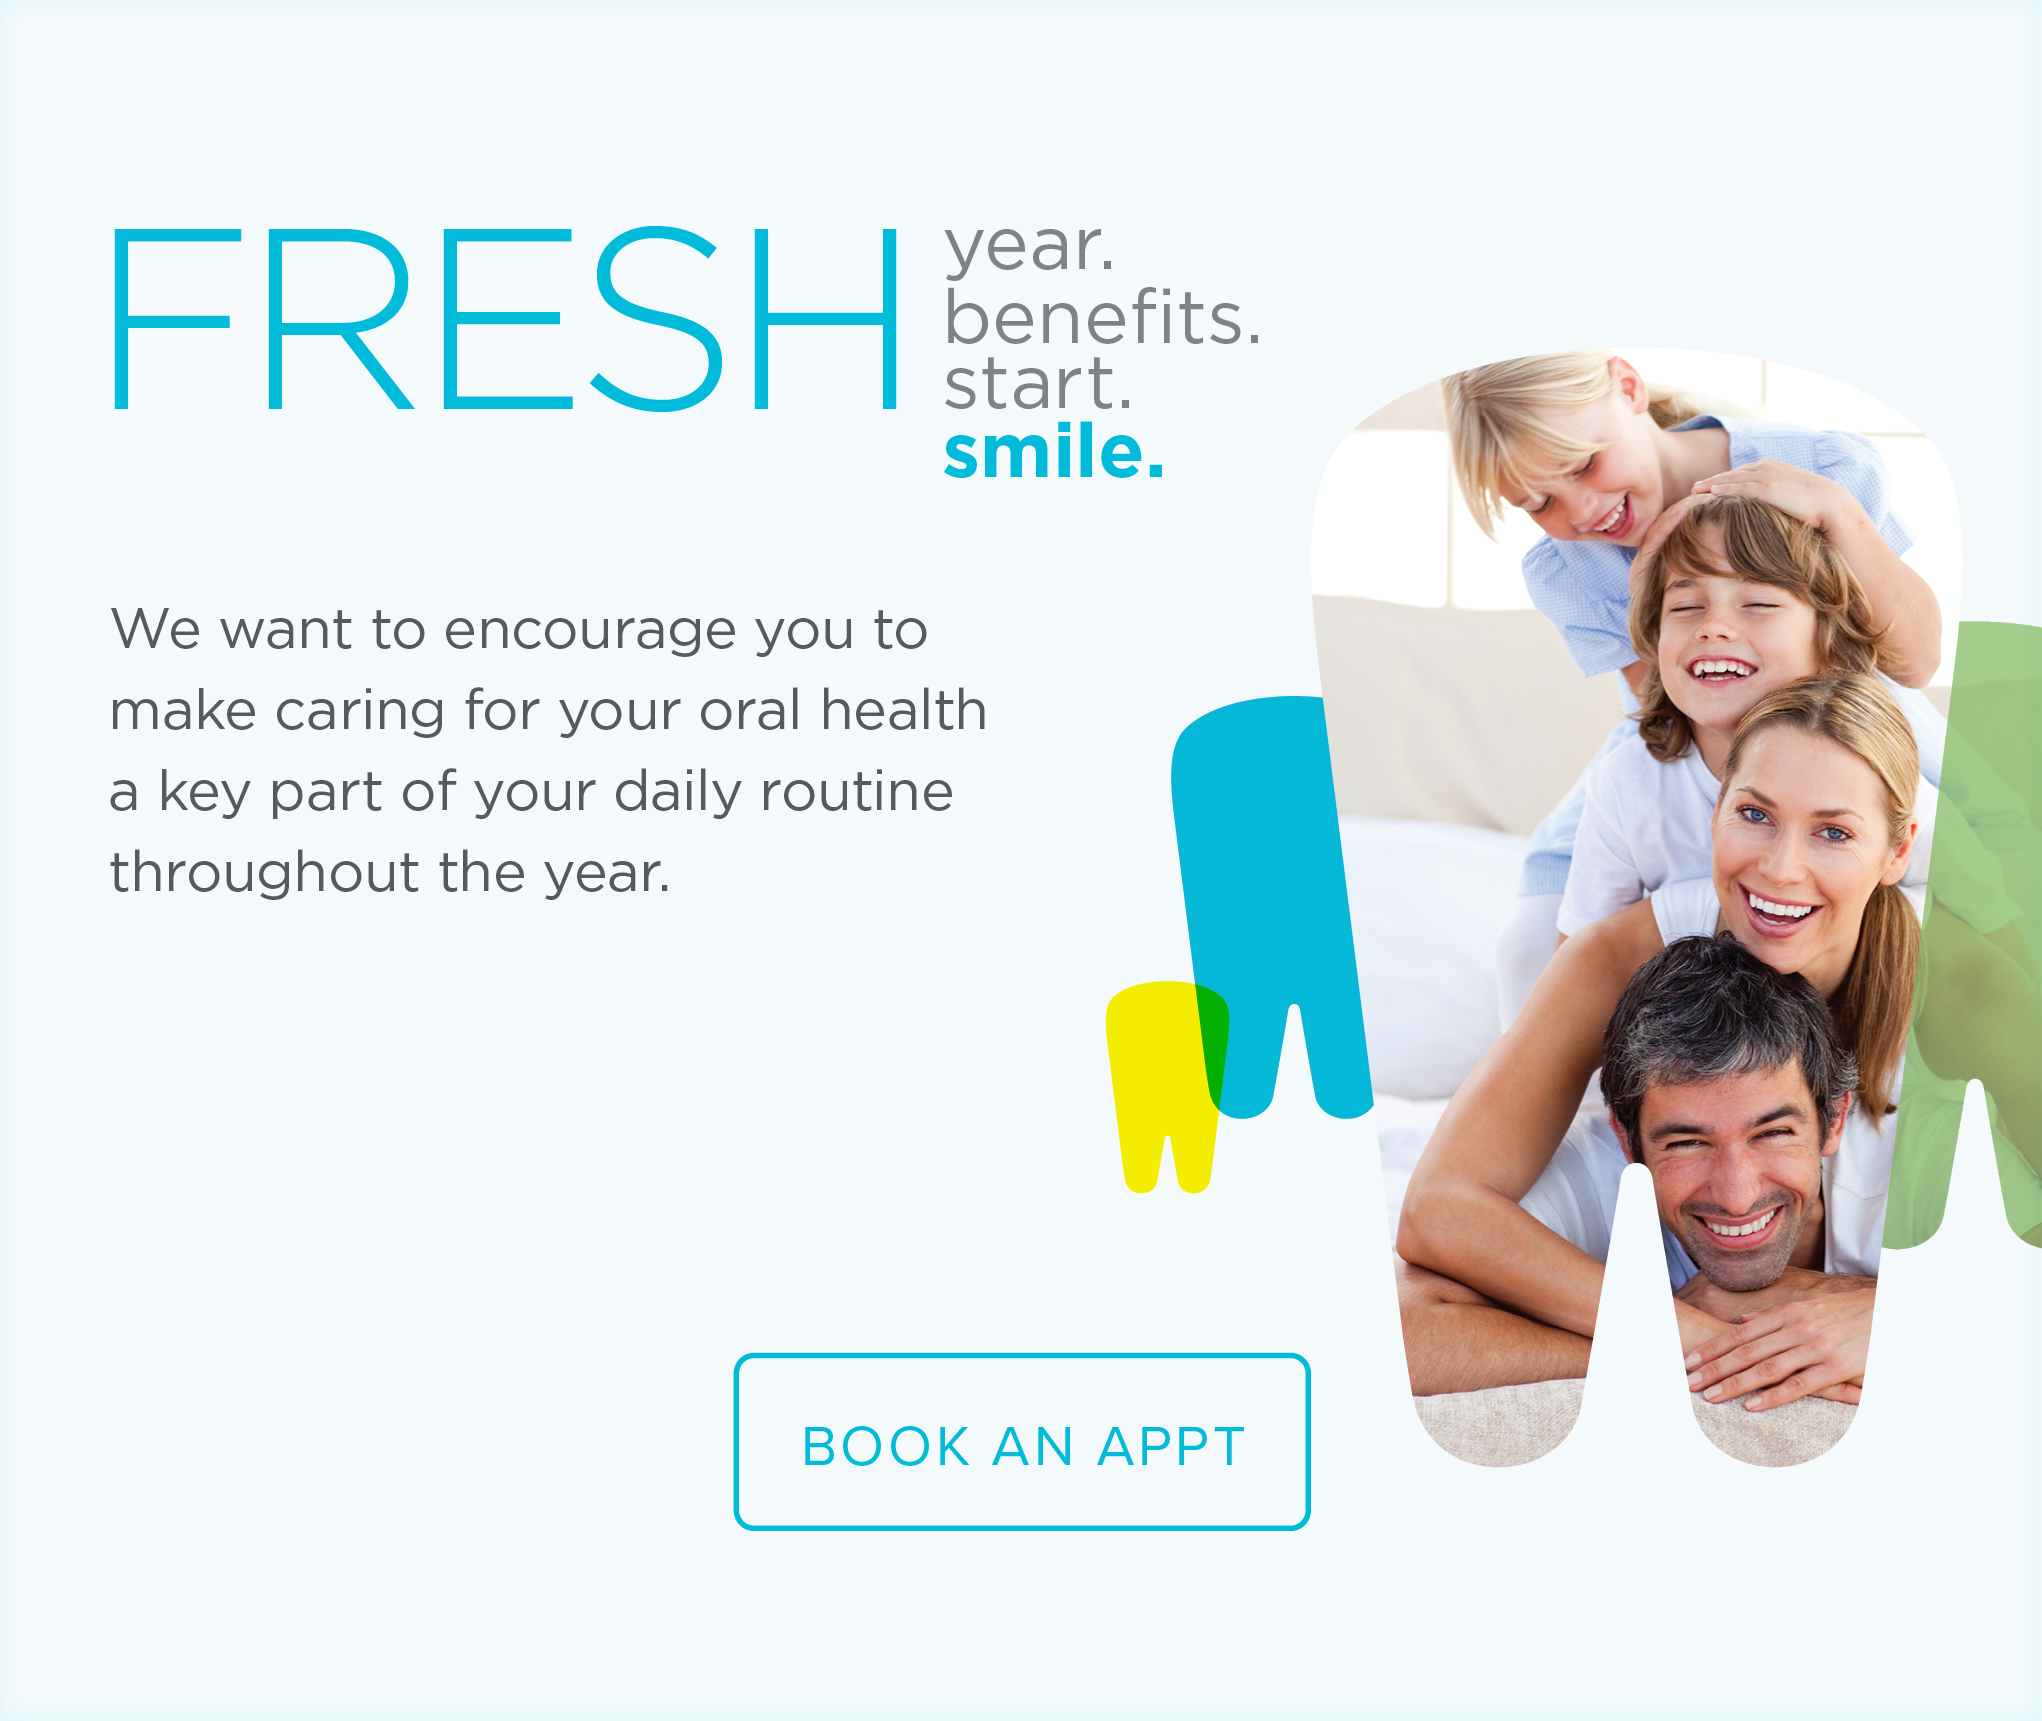 Crossroads Dental Group - Make the Most of Your Benefits